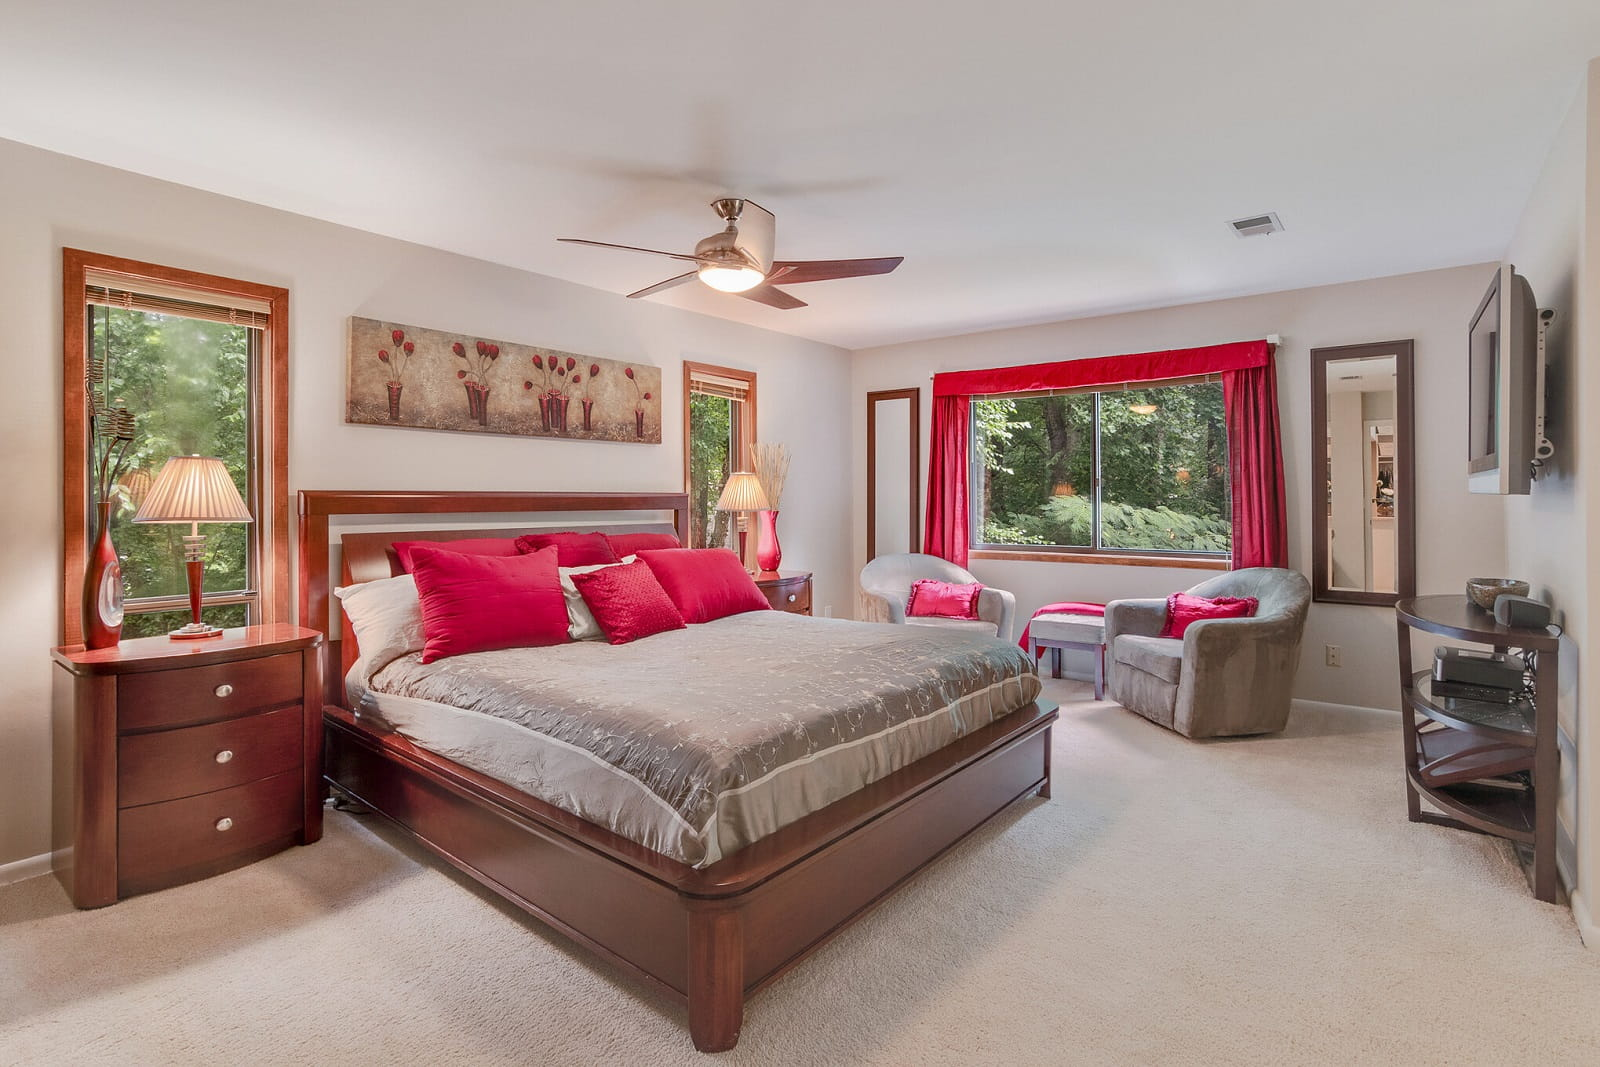 Real Estate Photography in Johns Creek - GA - USA - Bedroom View